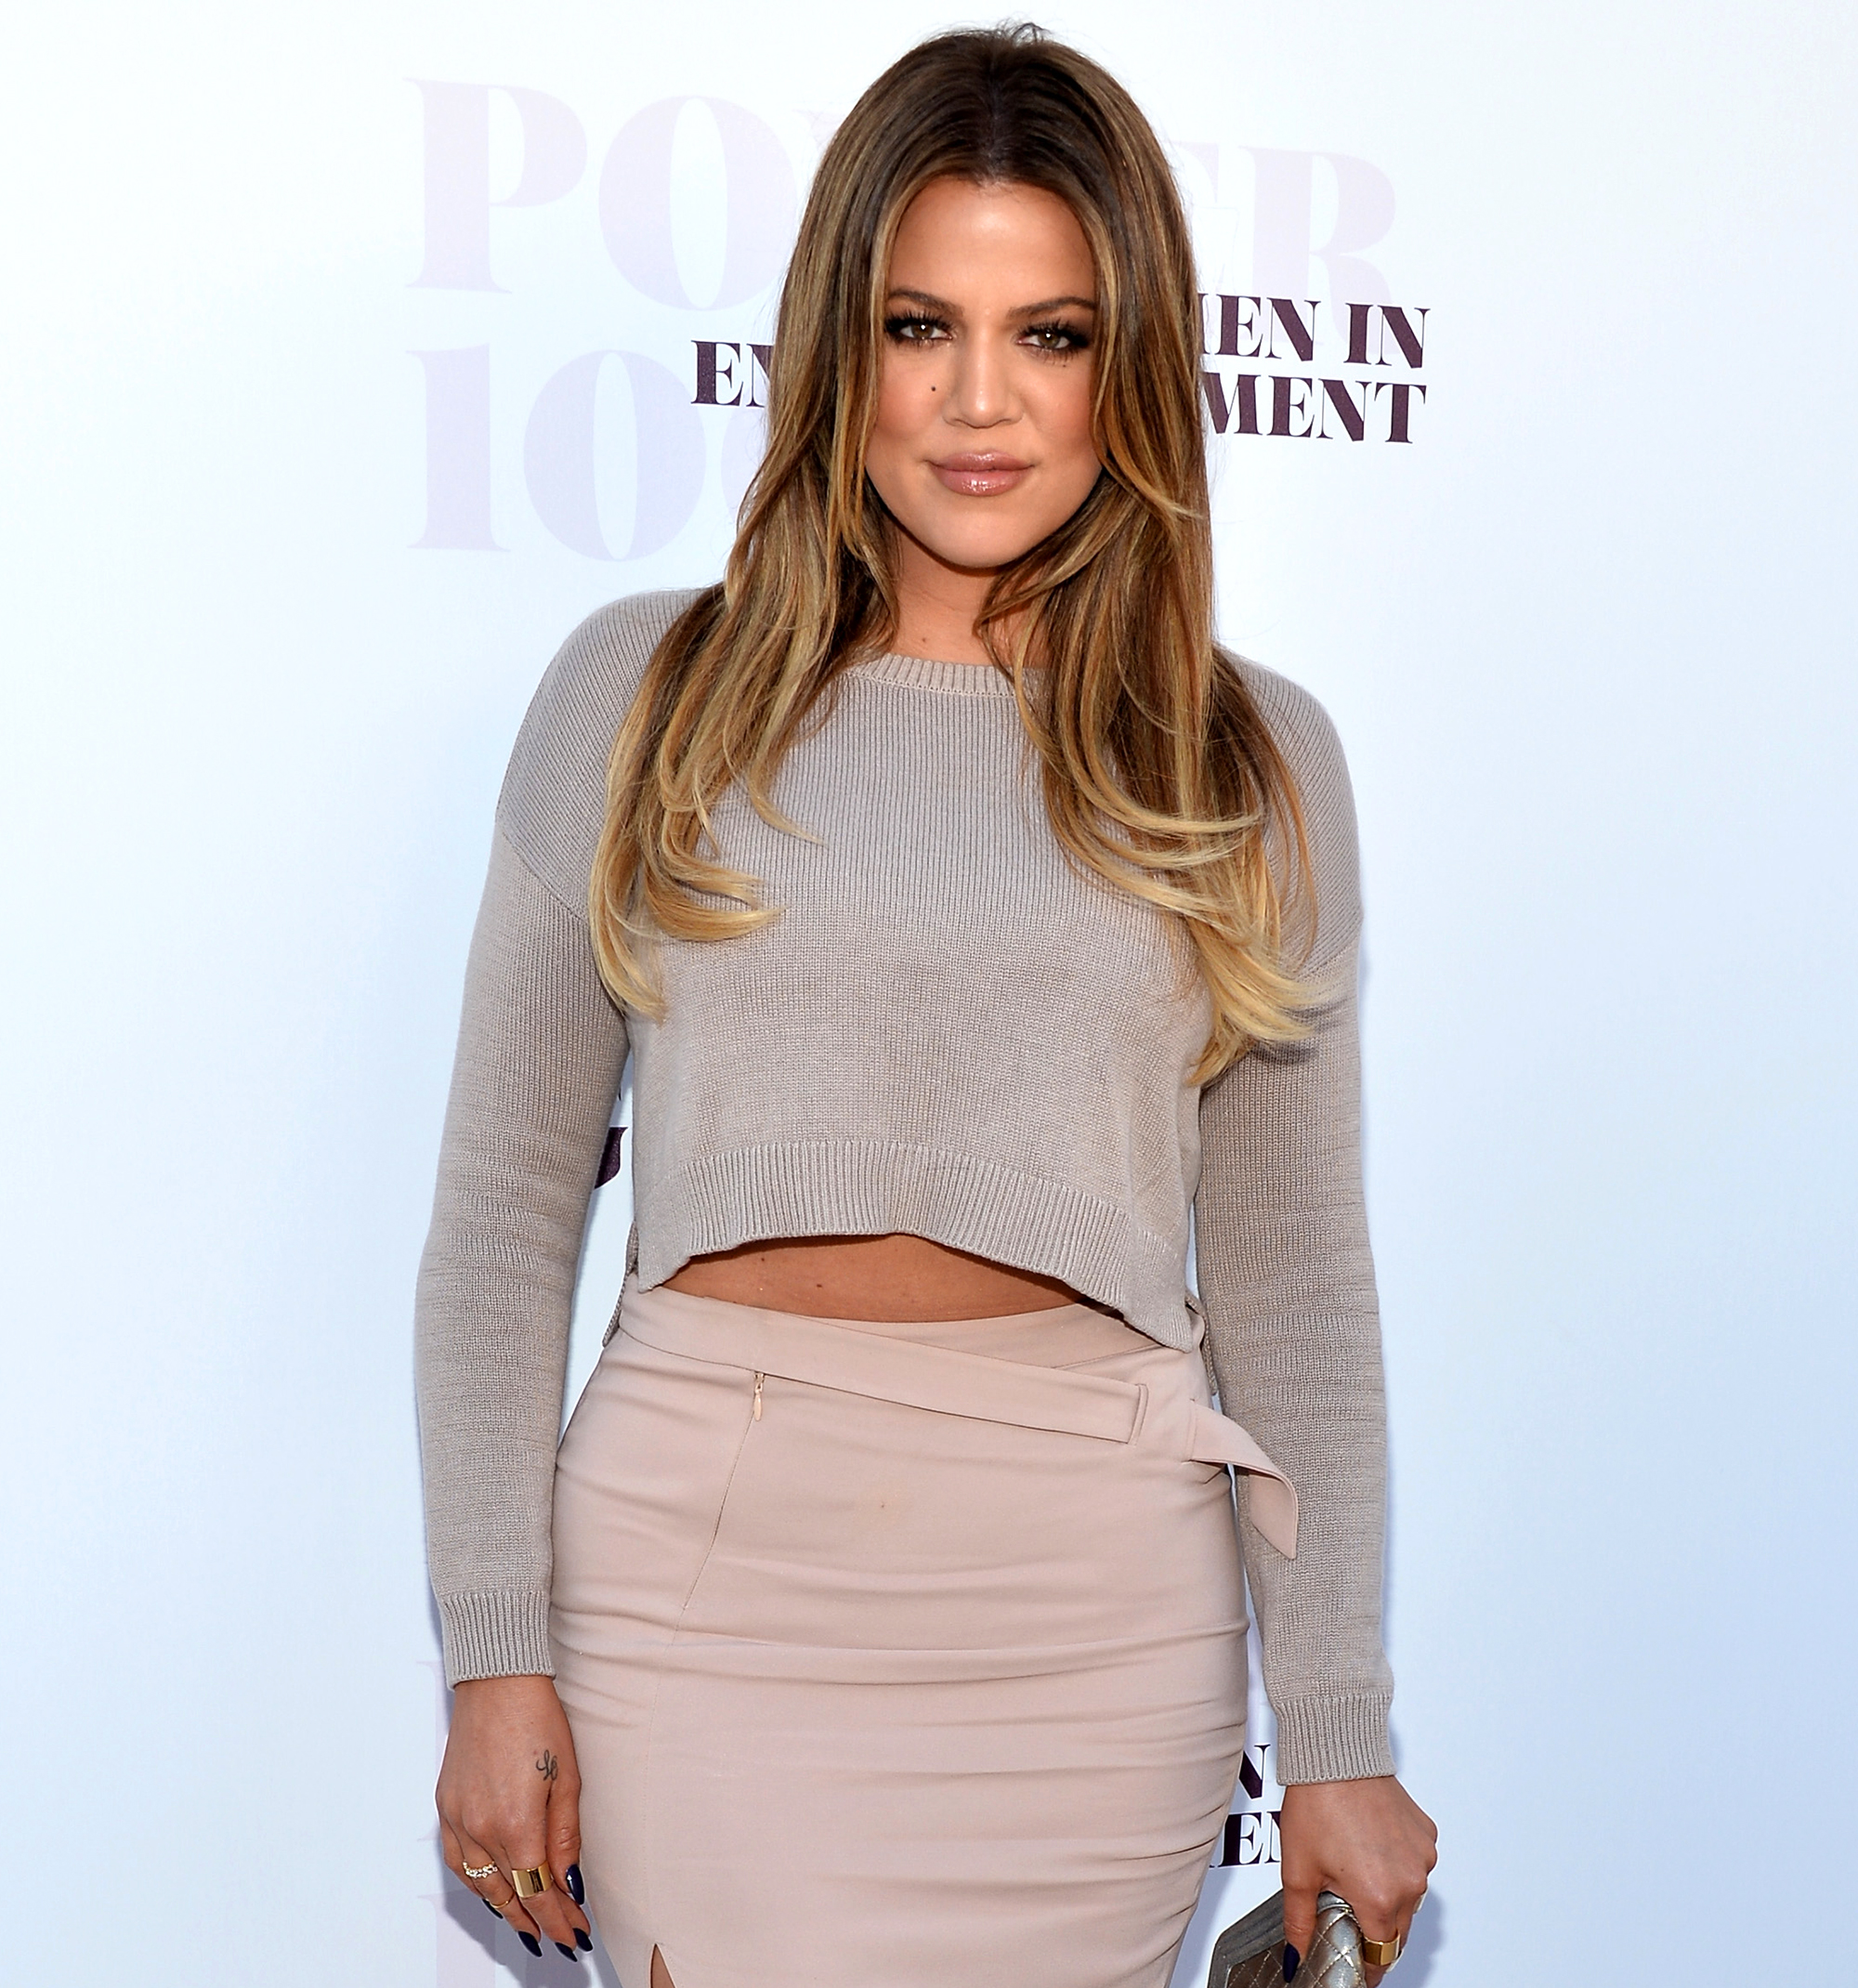 Khloe Kardashian finds being pregnant in LA stressful